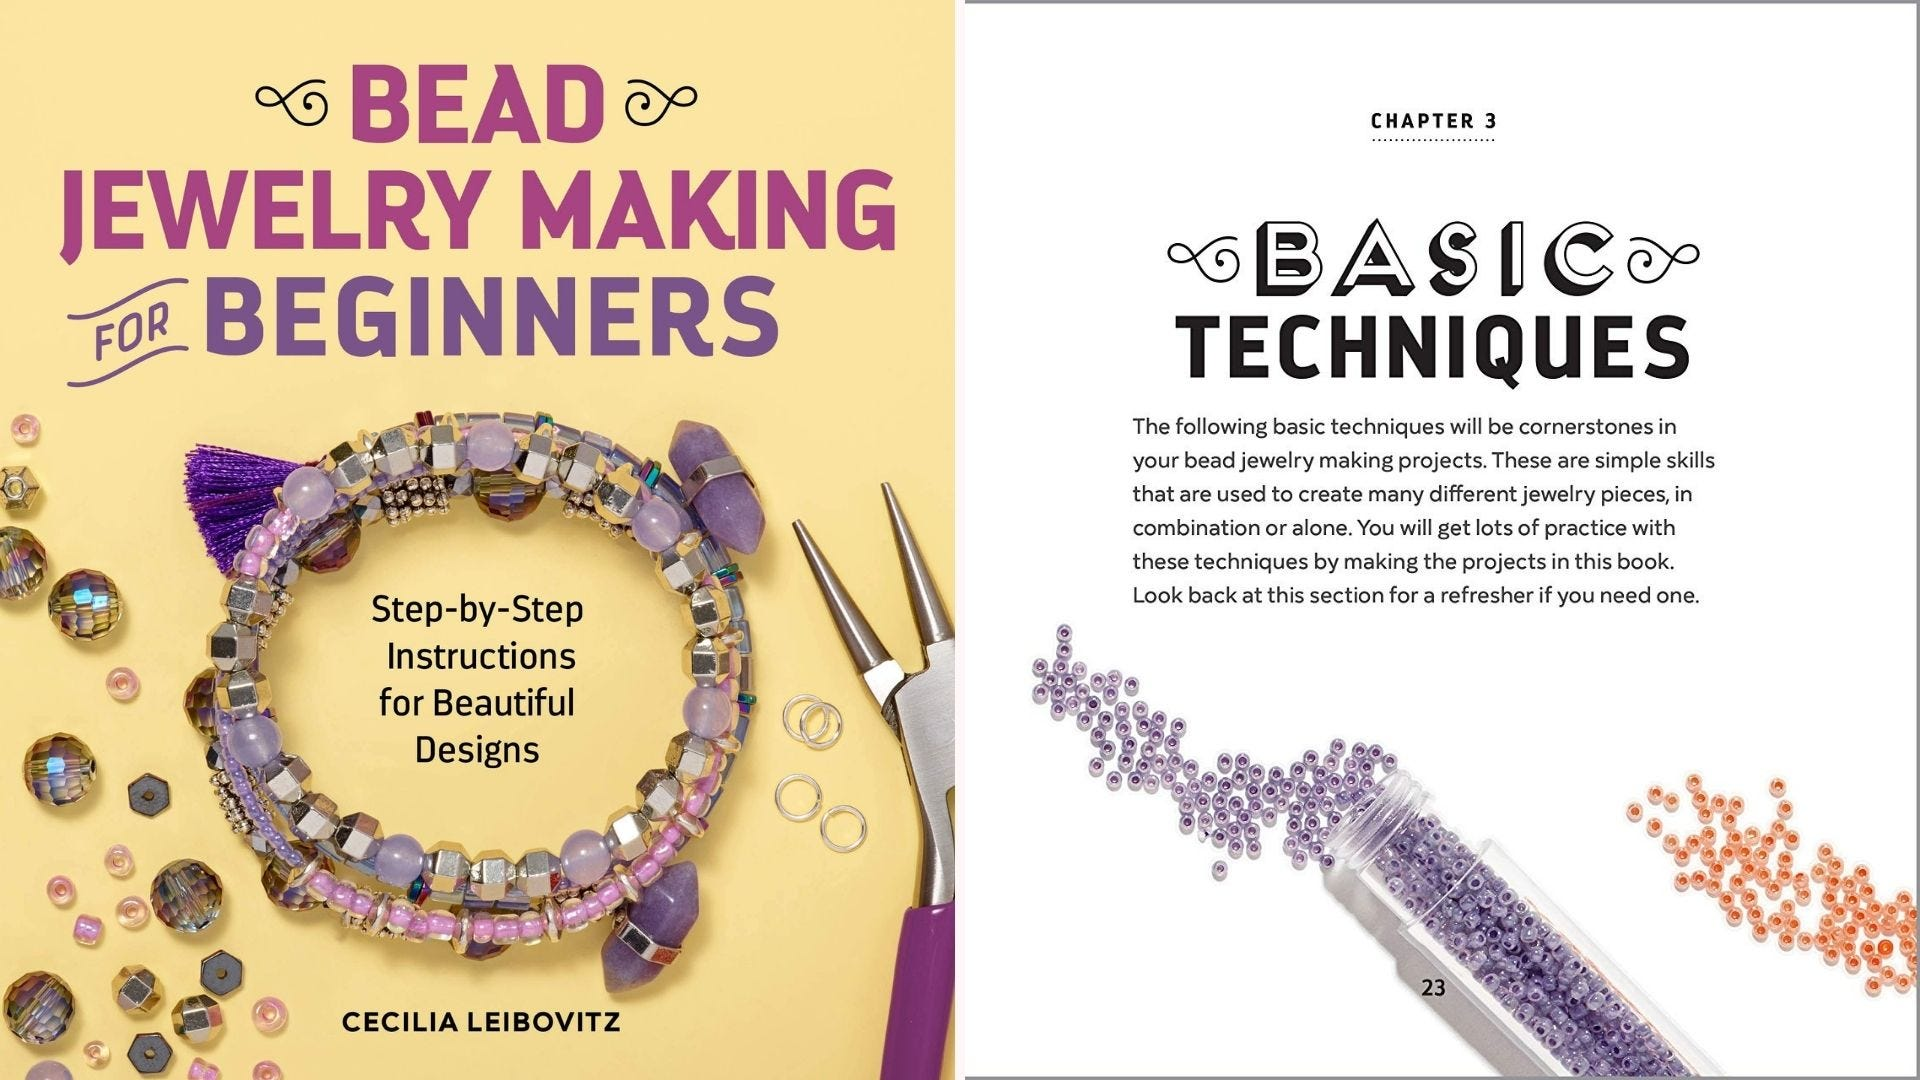 Bead and Jewelry Making for Beginners book